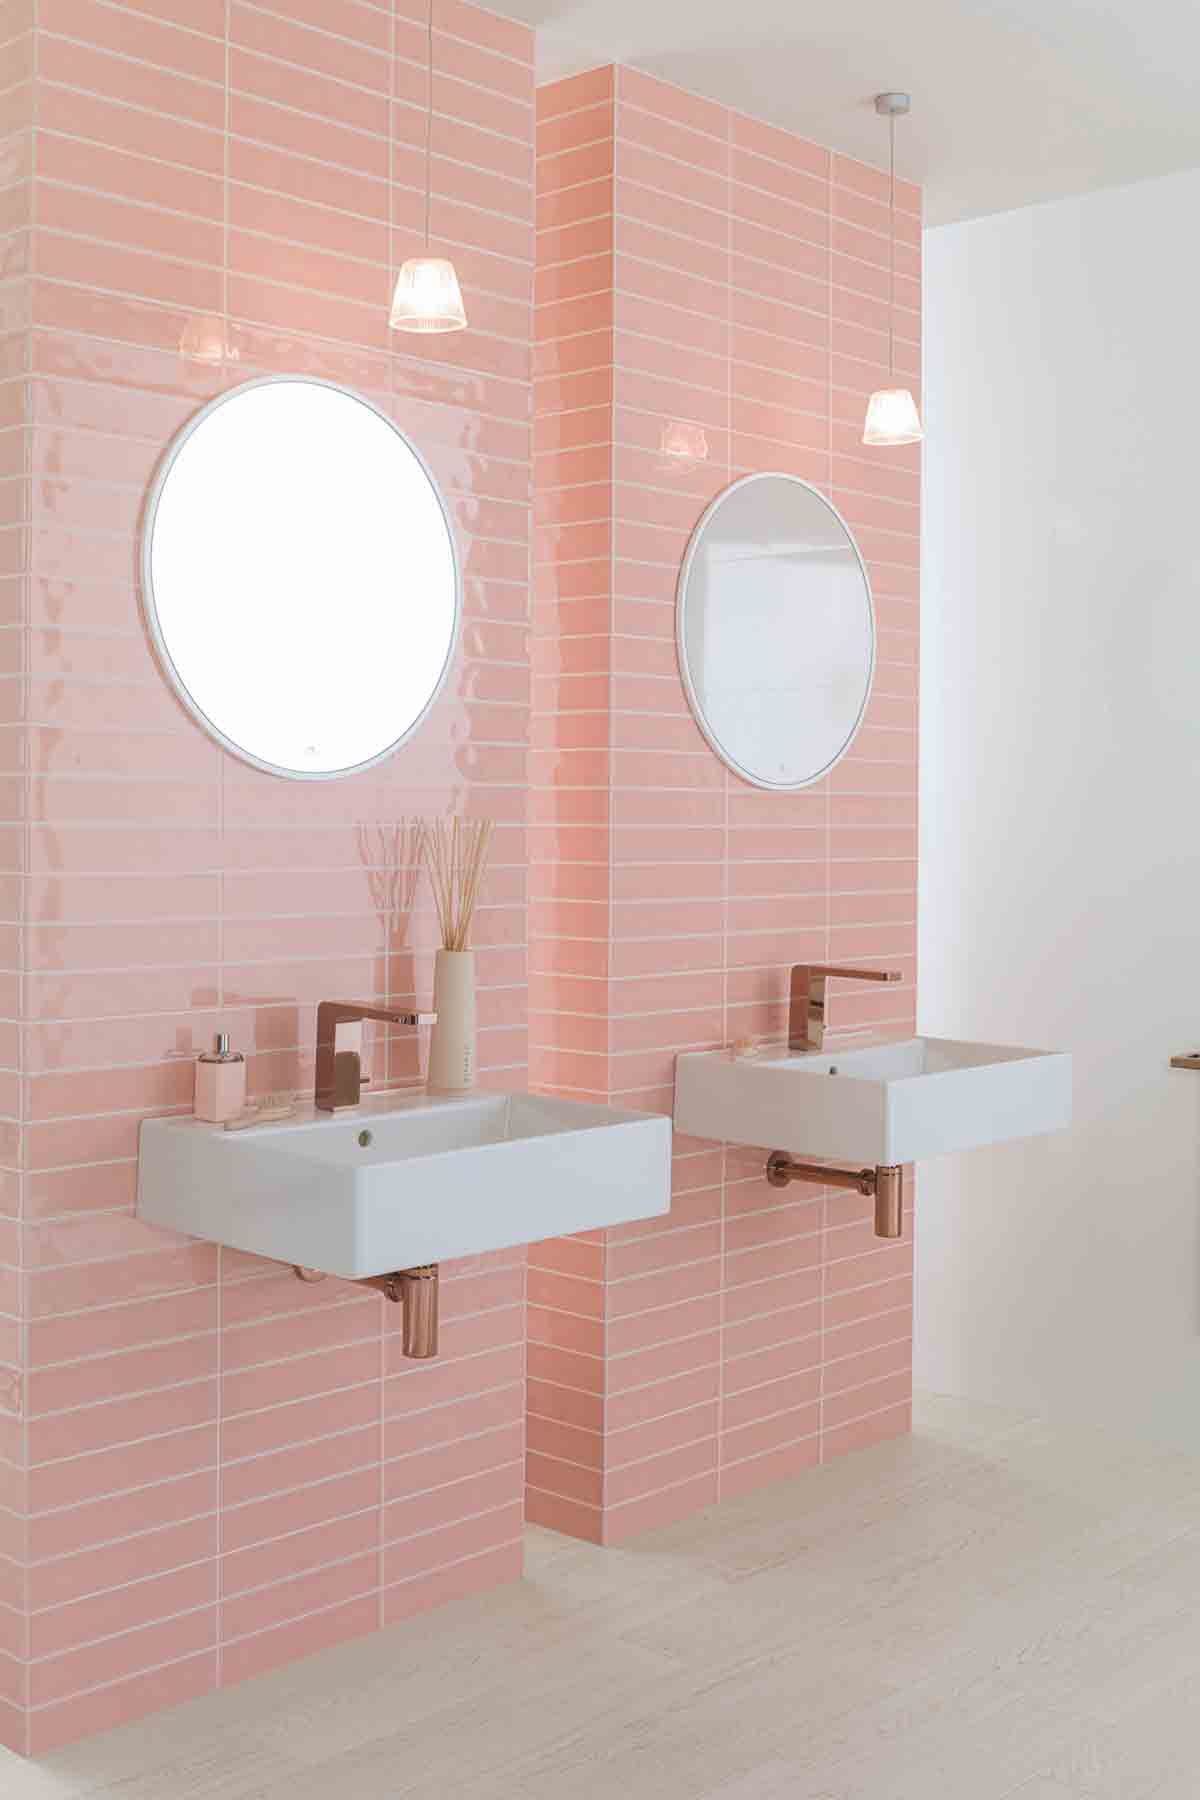 Malaga Rose Wall Tiles 41sq M Porcelanosa Jam Basins 333 Each Lounge Copper Taps 803 And Urban Bottle Traps 209